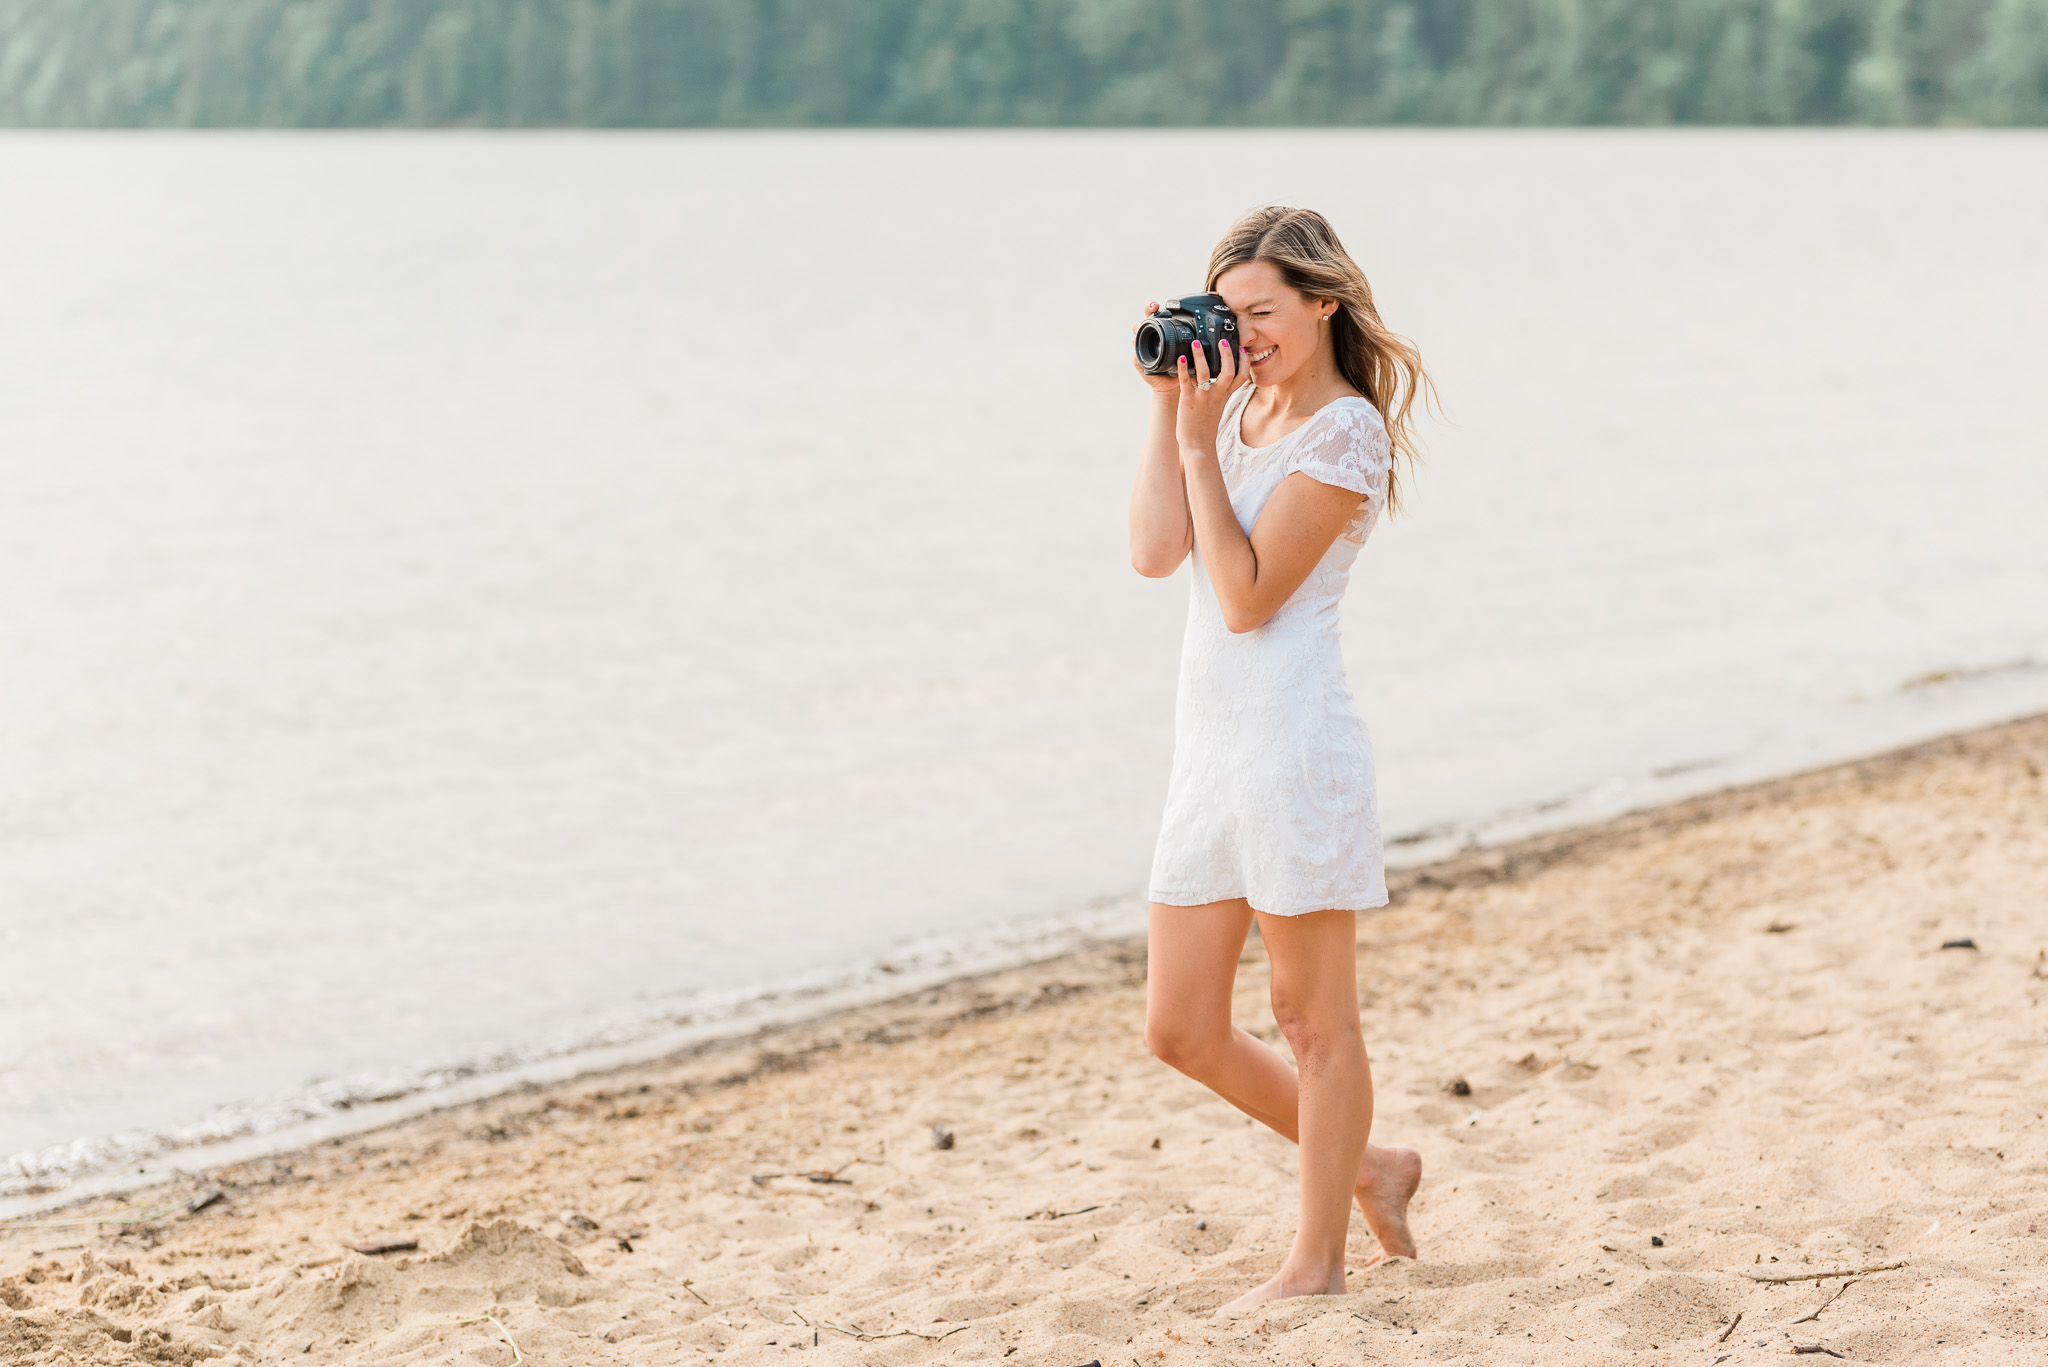 Hi Guys! - Amy here, owner and photographer at Amy Jakubowski Photography. Thank so much for stopping by my little corner of the internet. I'm a wife, mom, and lifestyle photographer located in Northern Wisconsin. Take a look around and contact me with any questions! I love getting to meet new people and create gorgeous images!